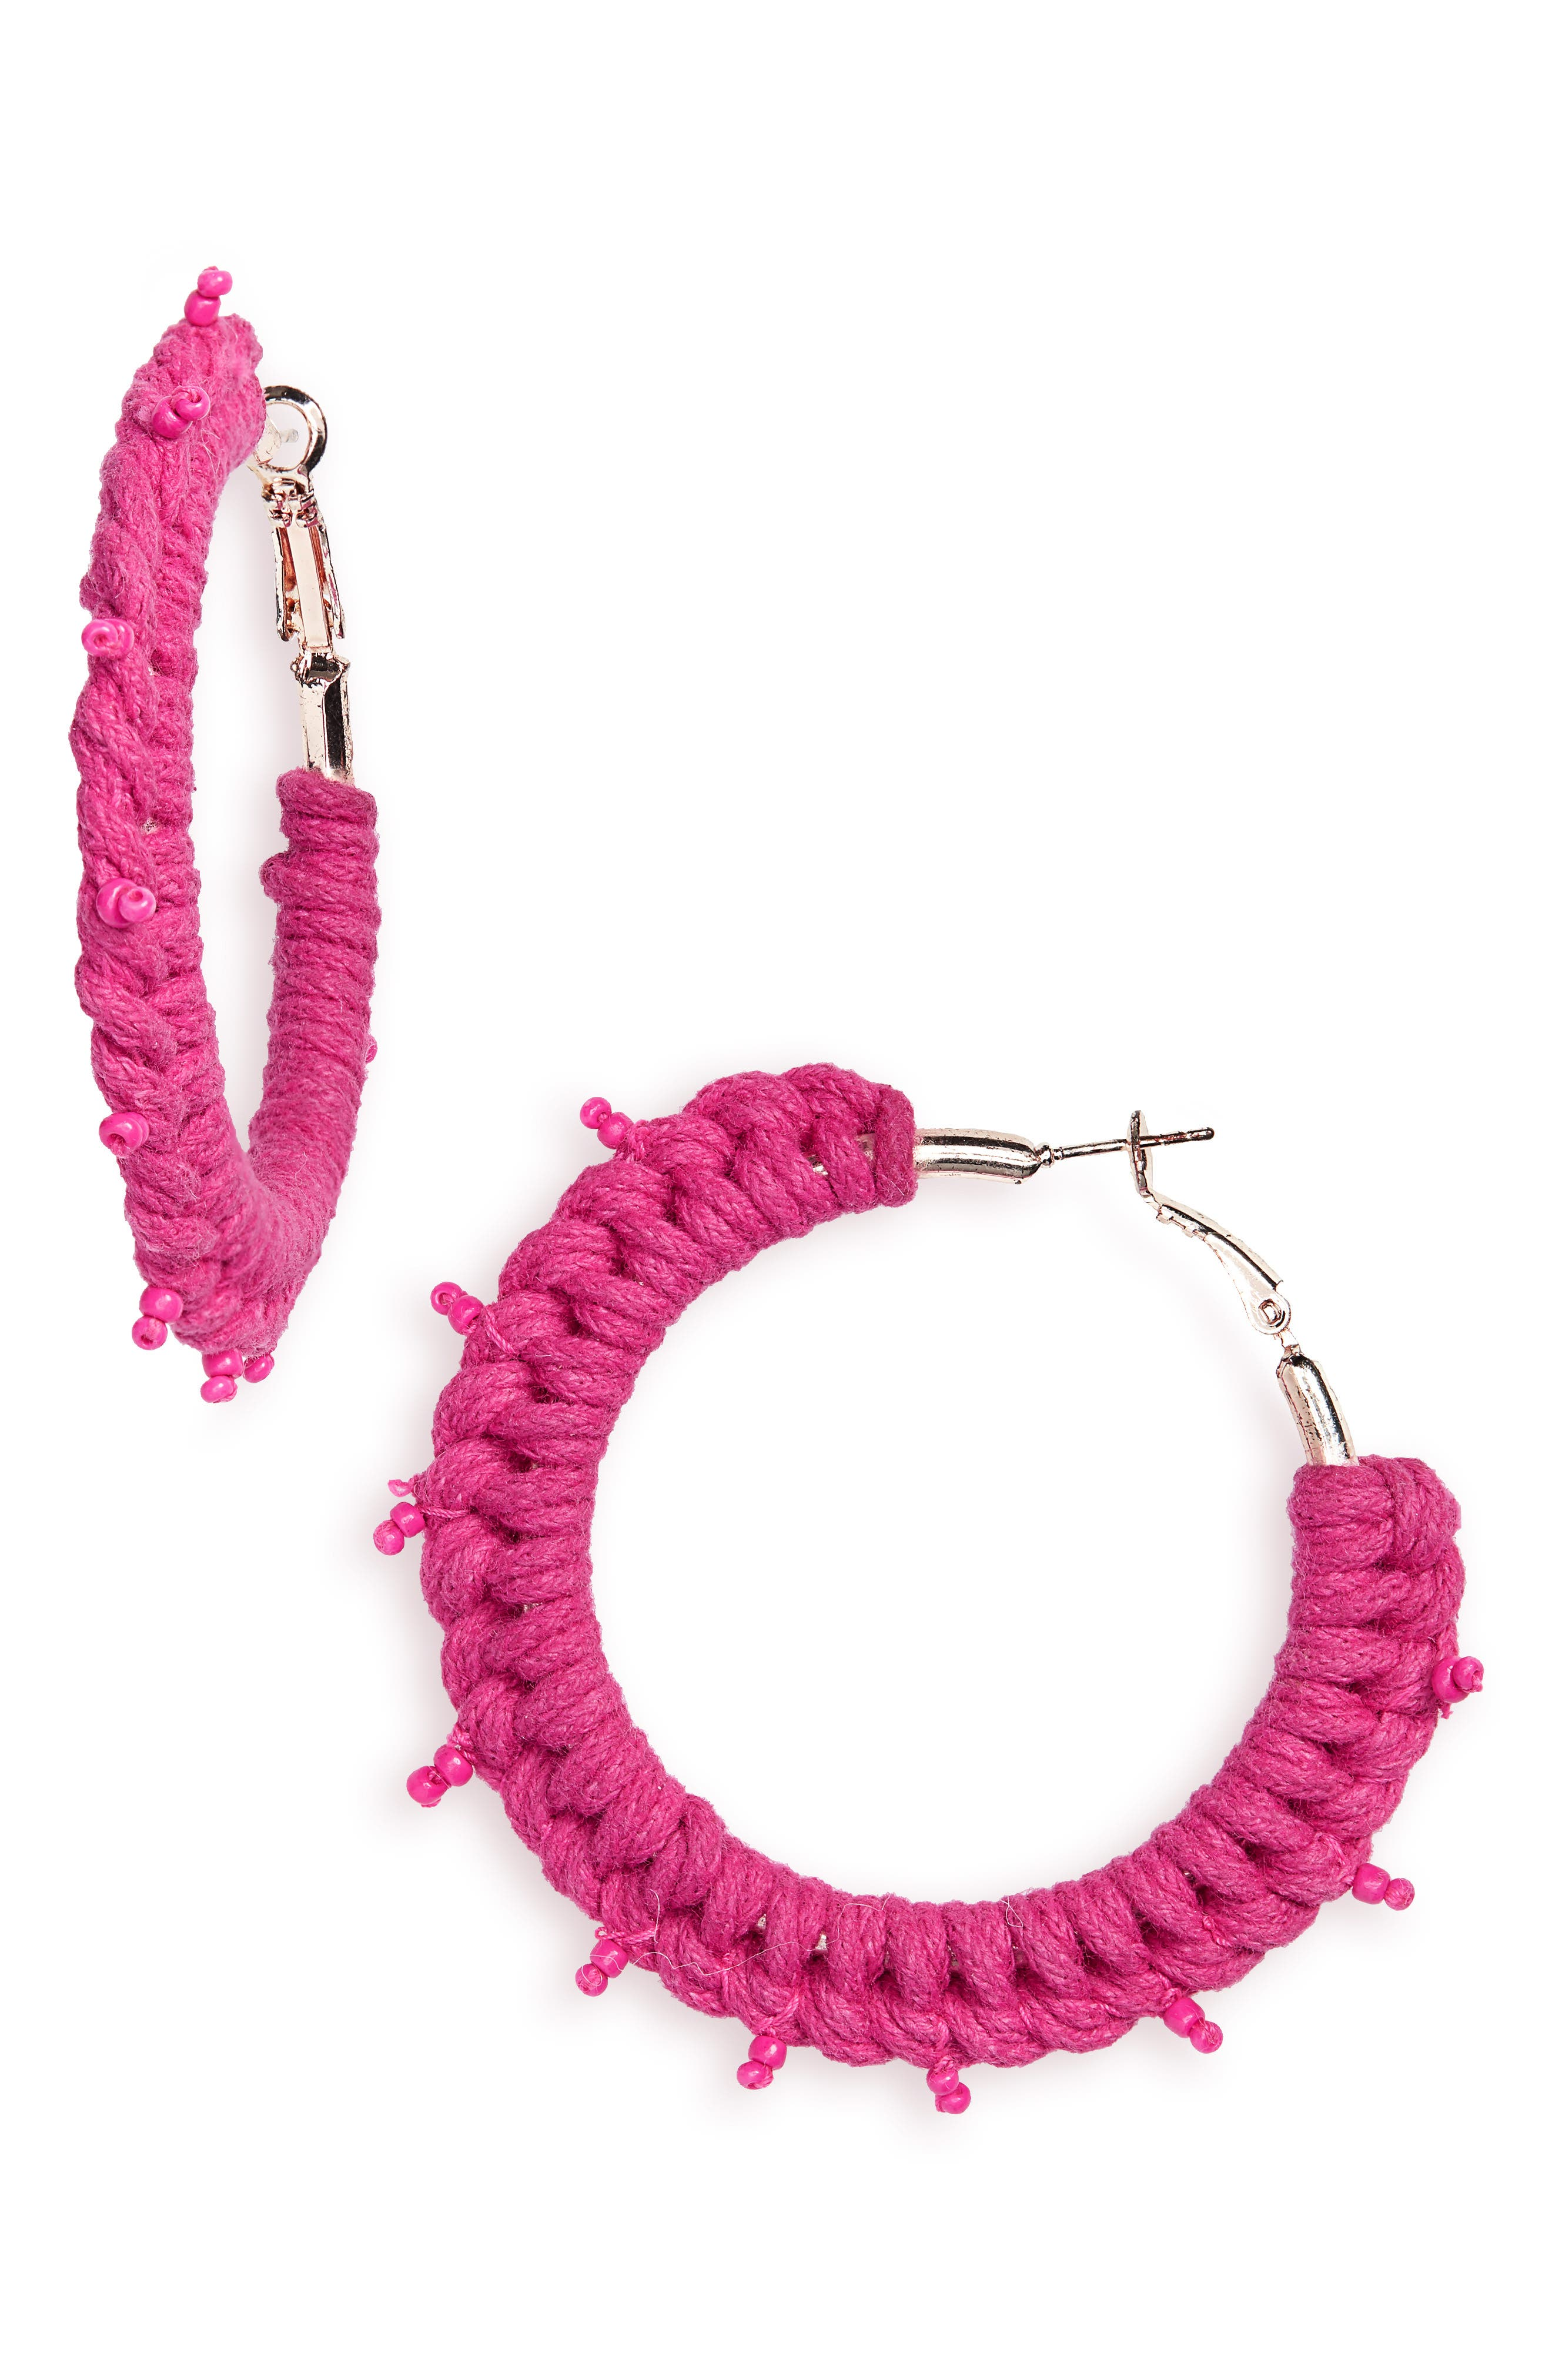 NEW FRIENDS COLONY Palma Hoop Earrings in Fuchsia